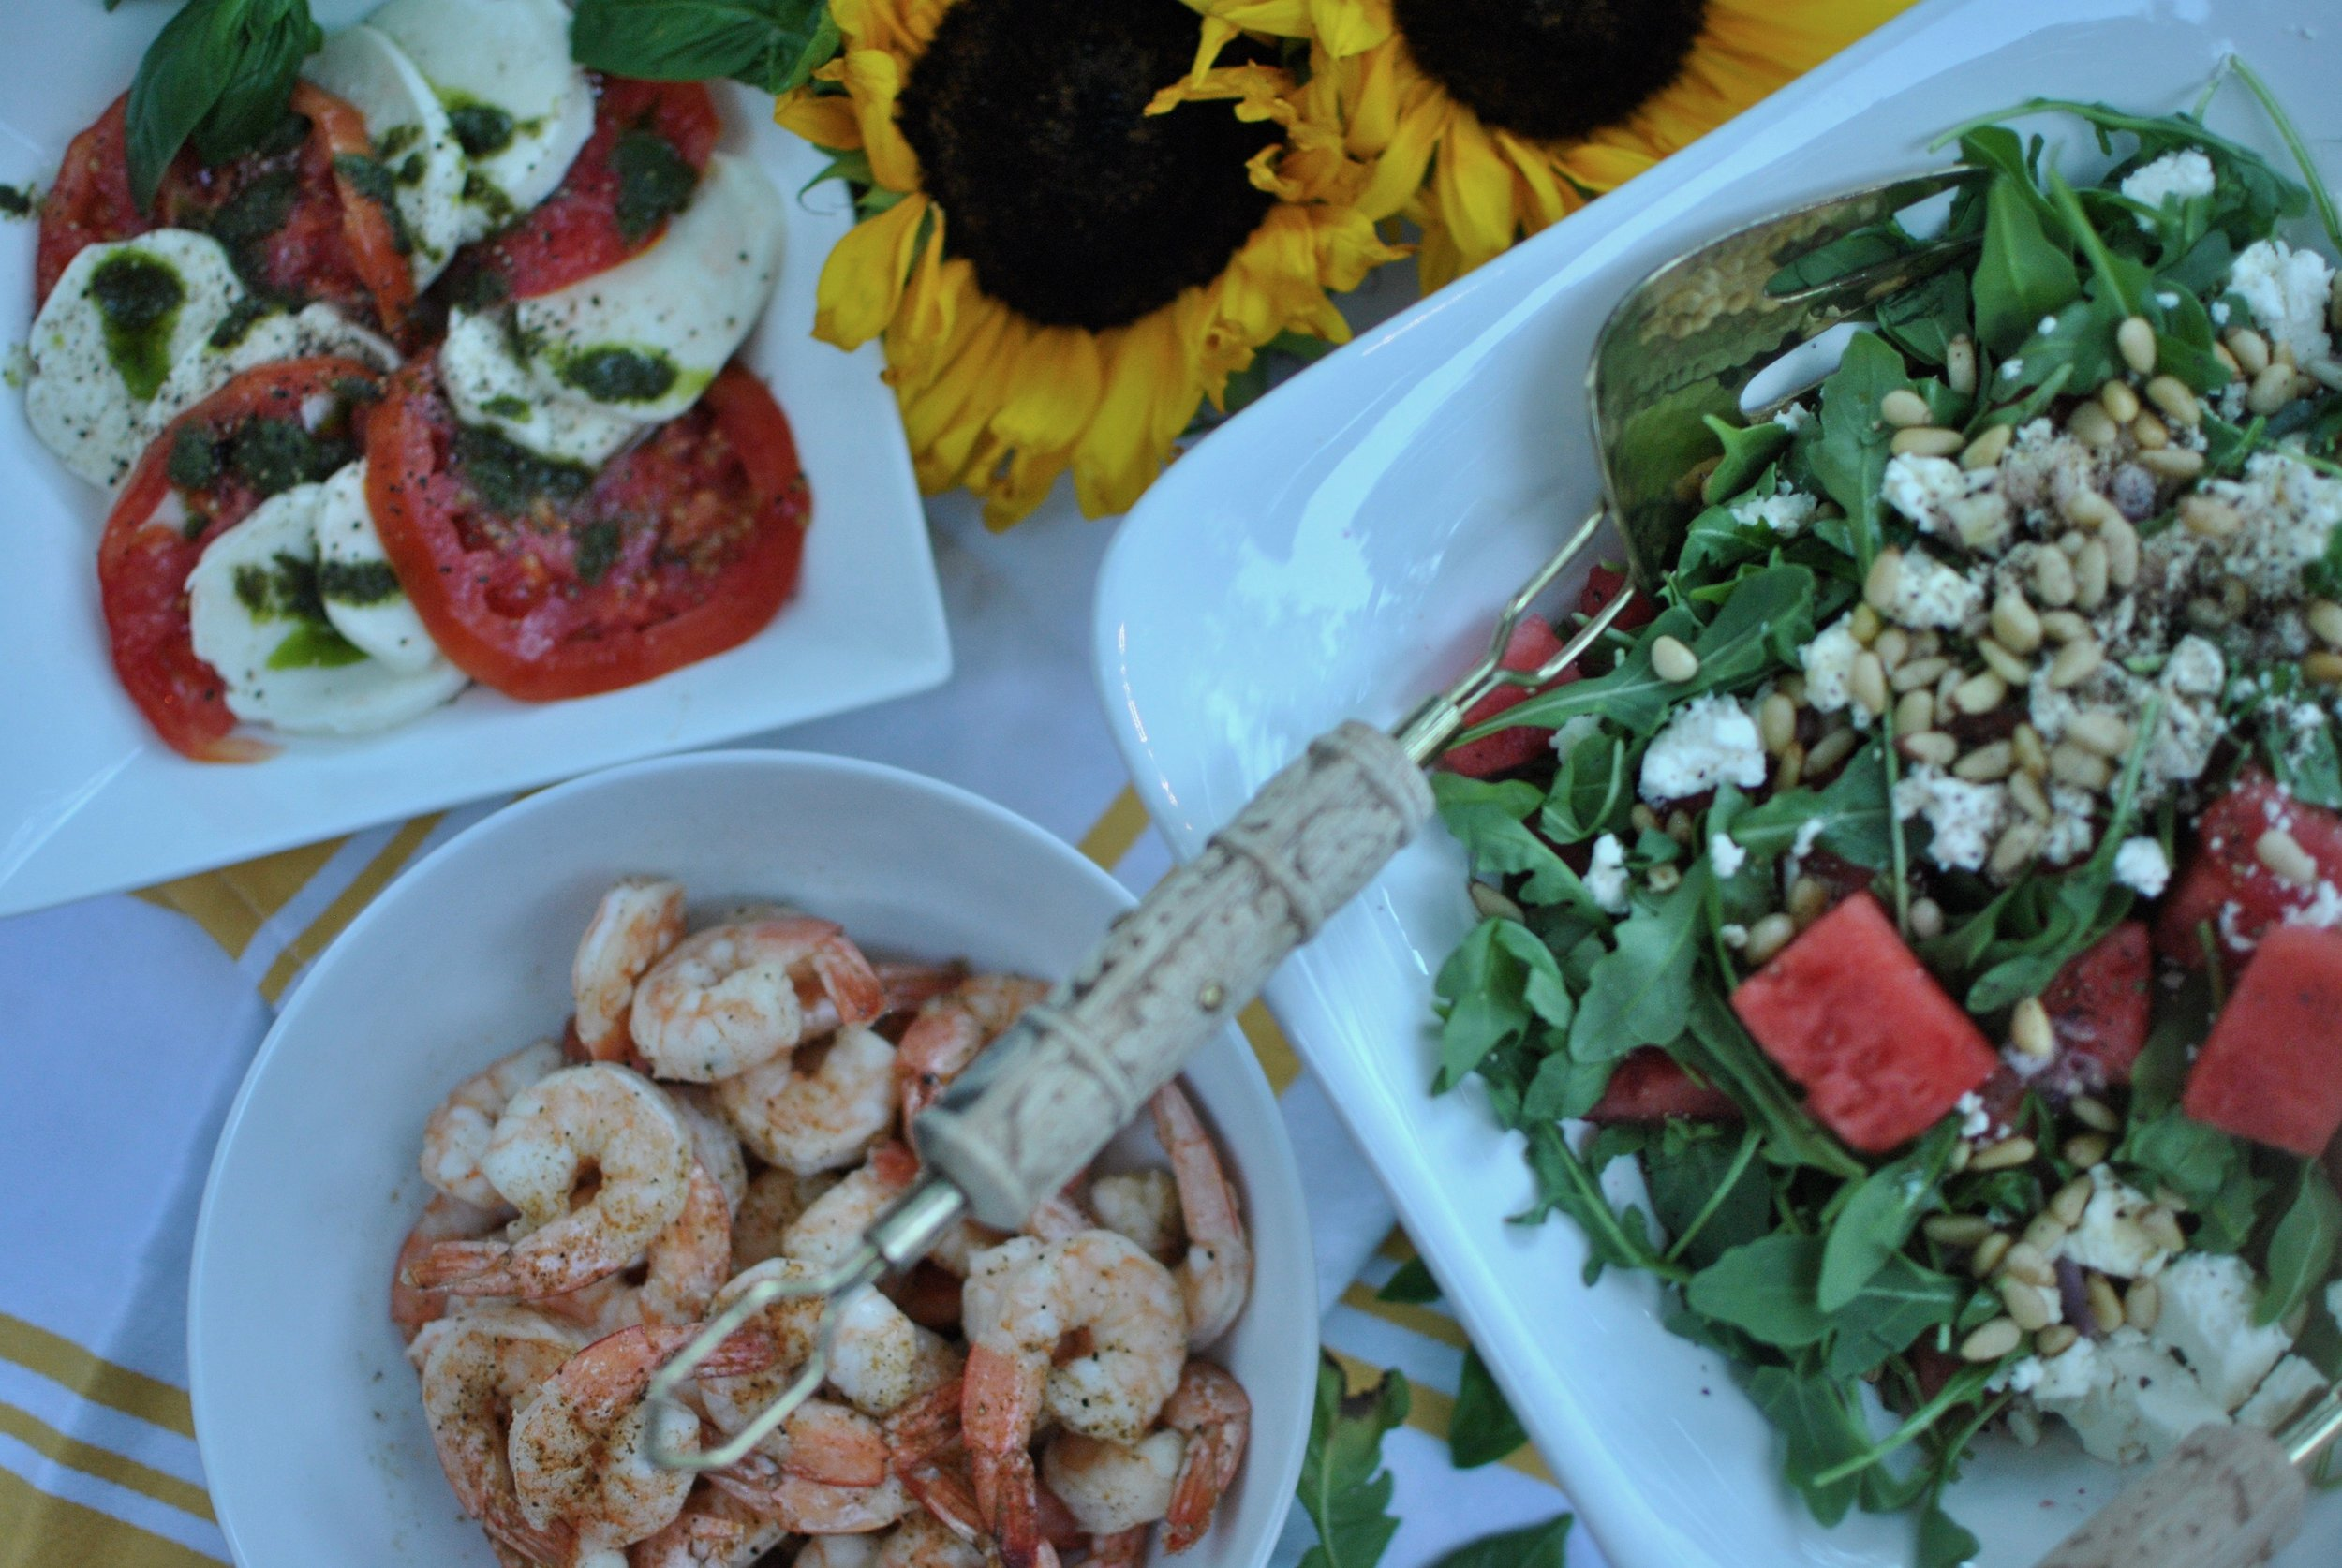 dinner idea - watermelon salad, capresé salad and roasted shrimp